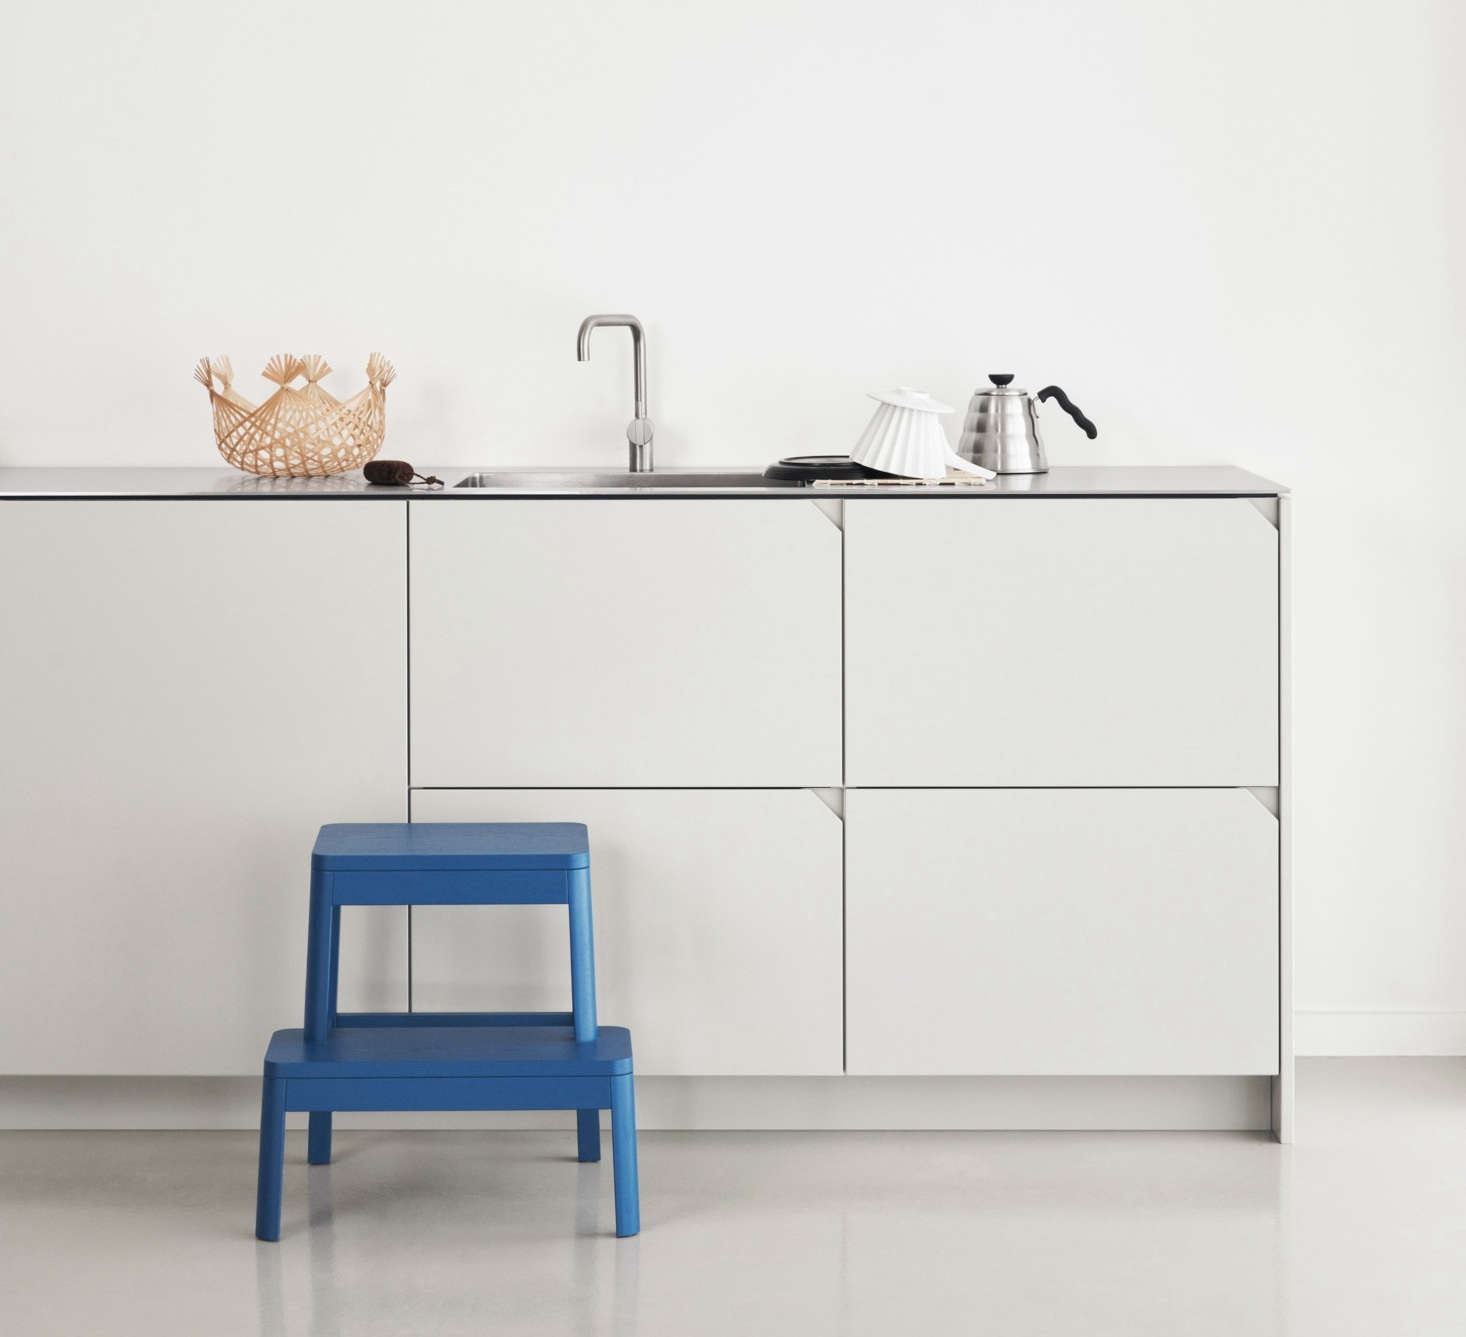 Küche Ikea Reform Take A Look At A Stylish Ikea Kitchen Hack By Designer